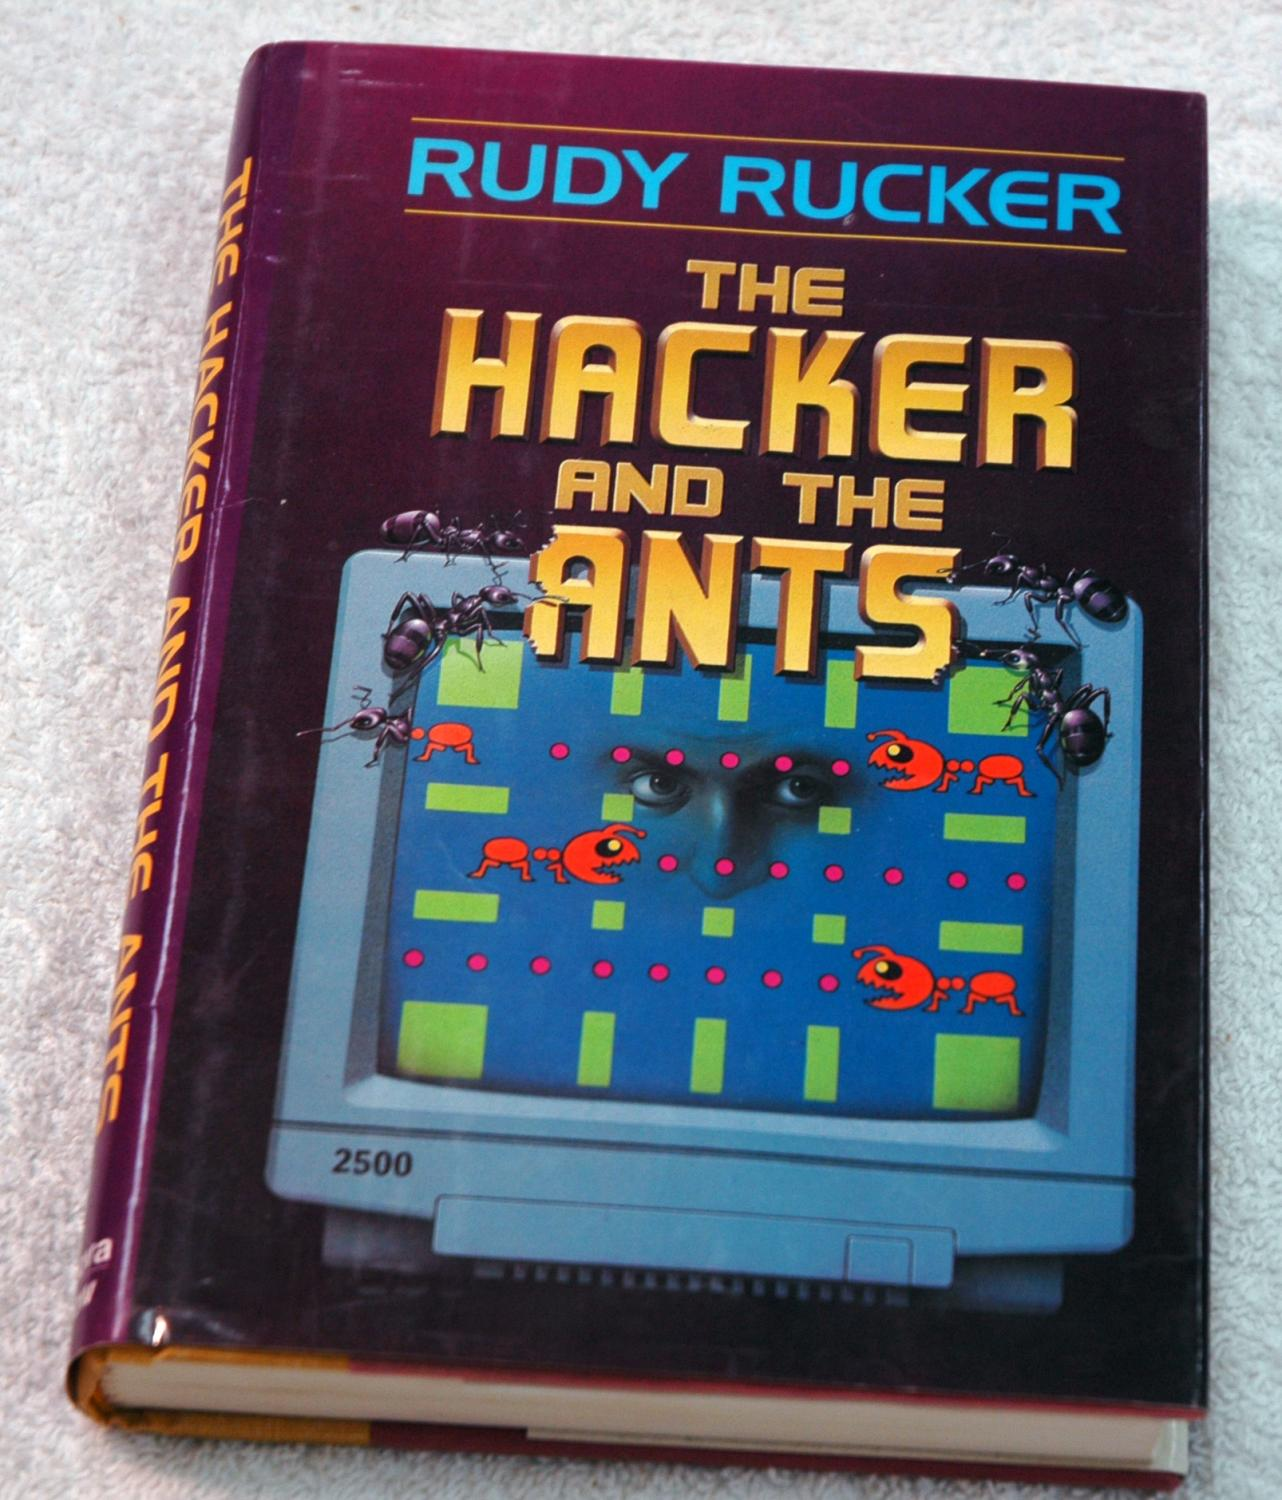 The Hacker and the Ants: Rudy Rucker